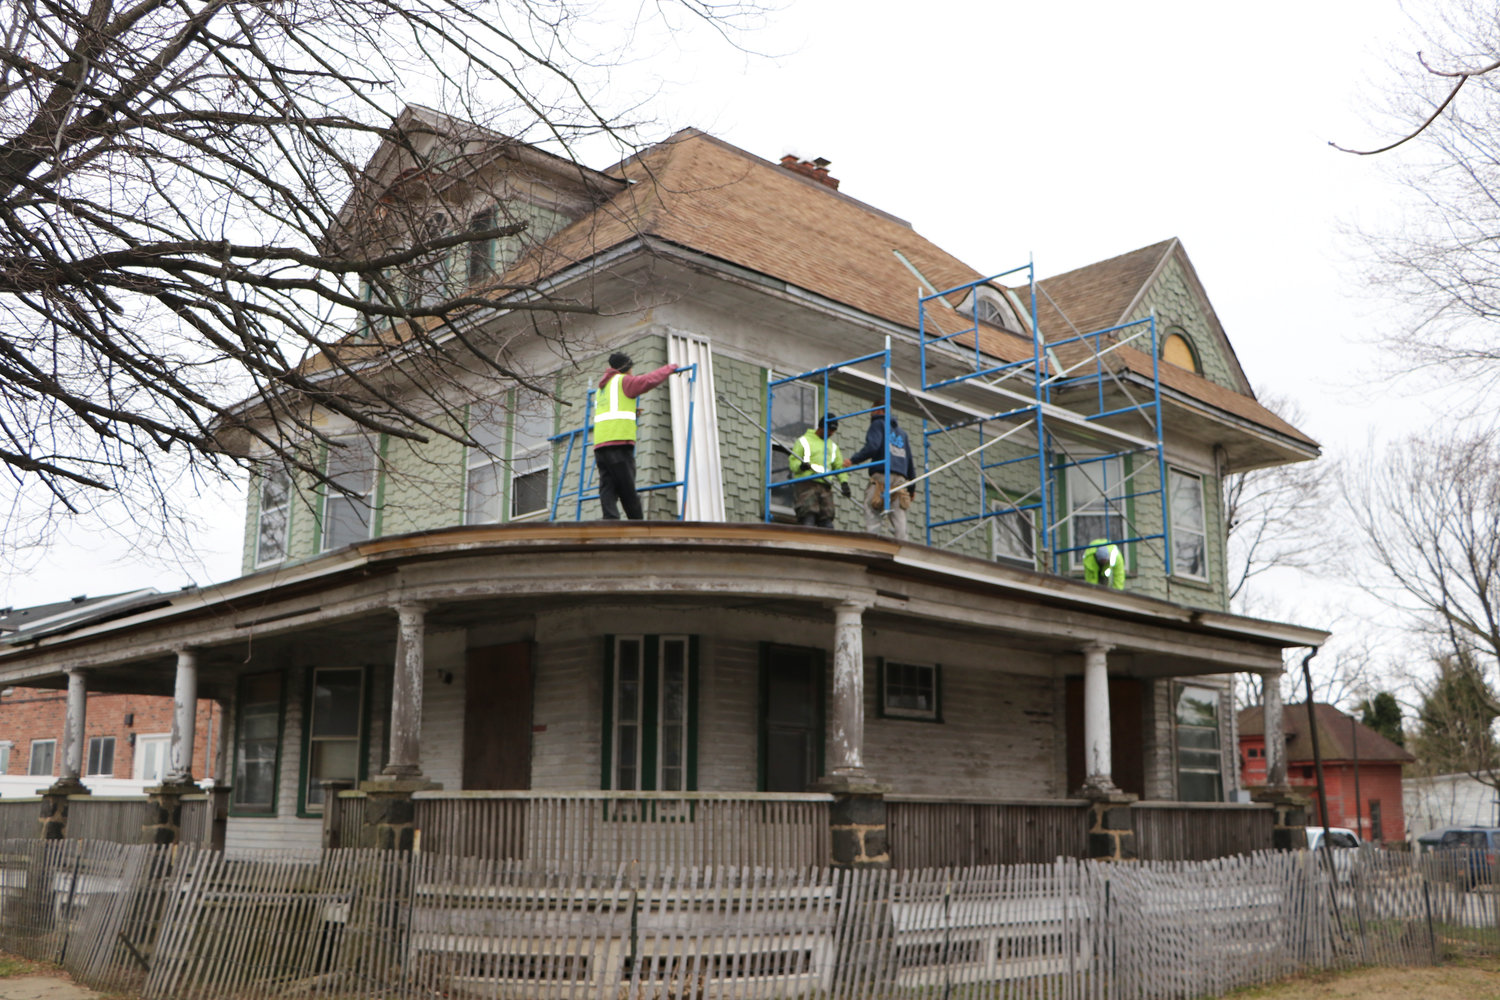 The Merrick Road structure has been in disrepair for many years, but may soon become a community center for Baldwin groups.